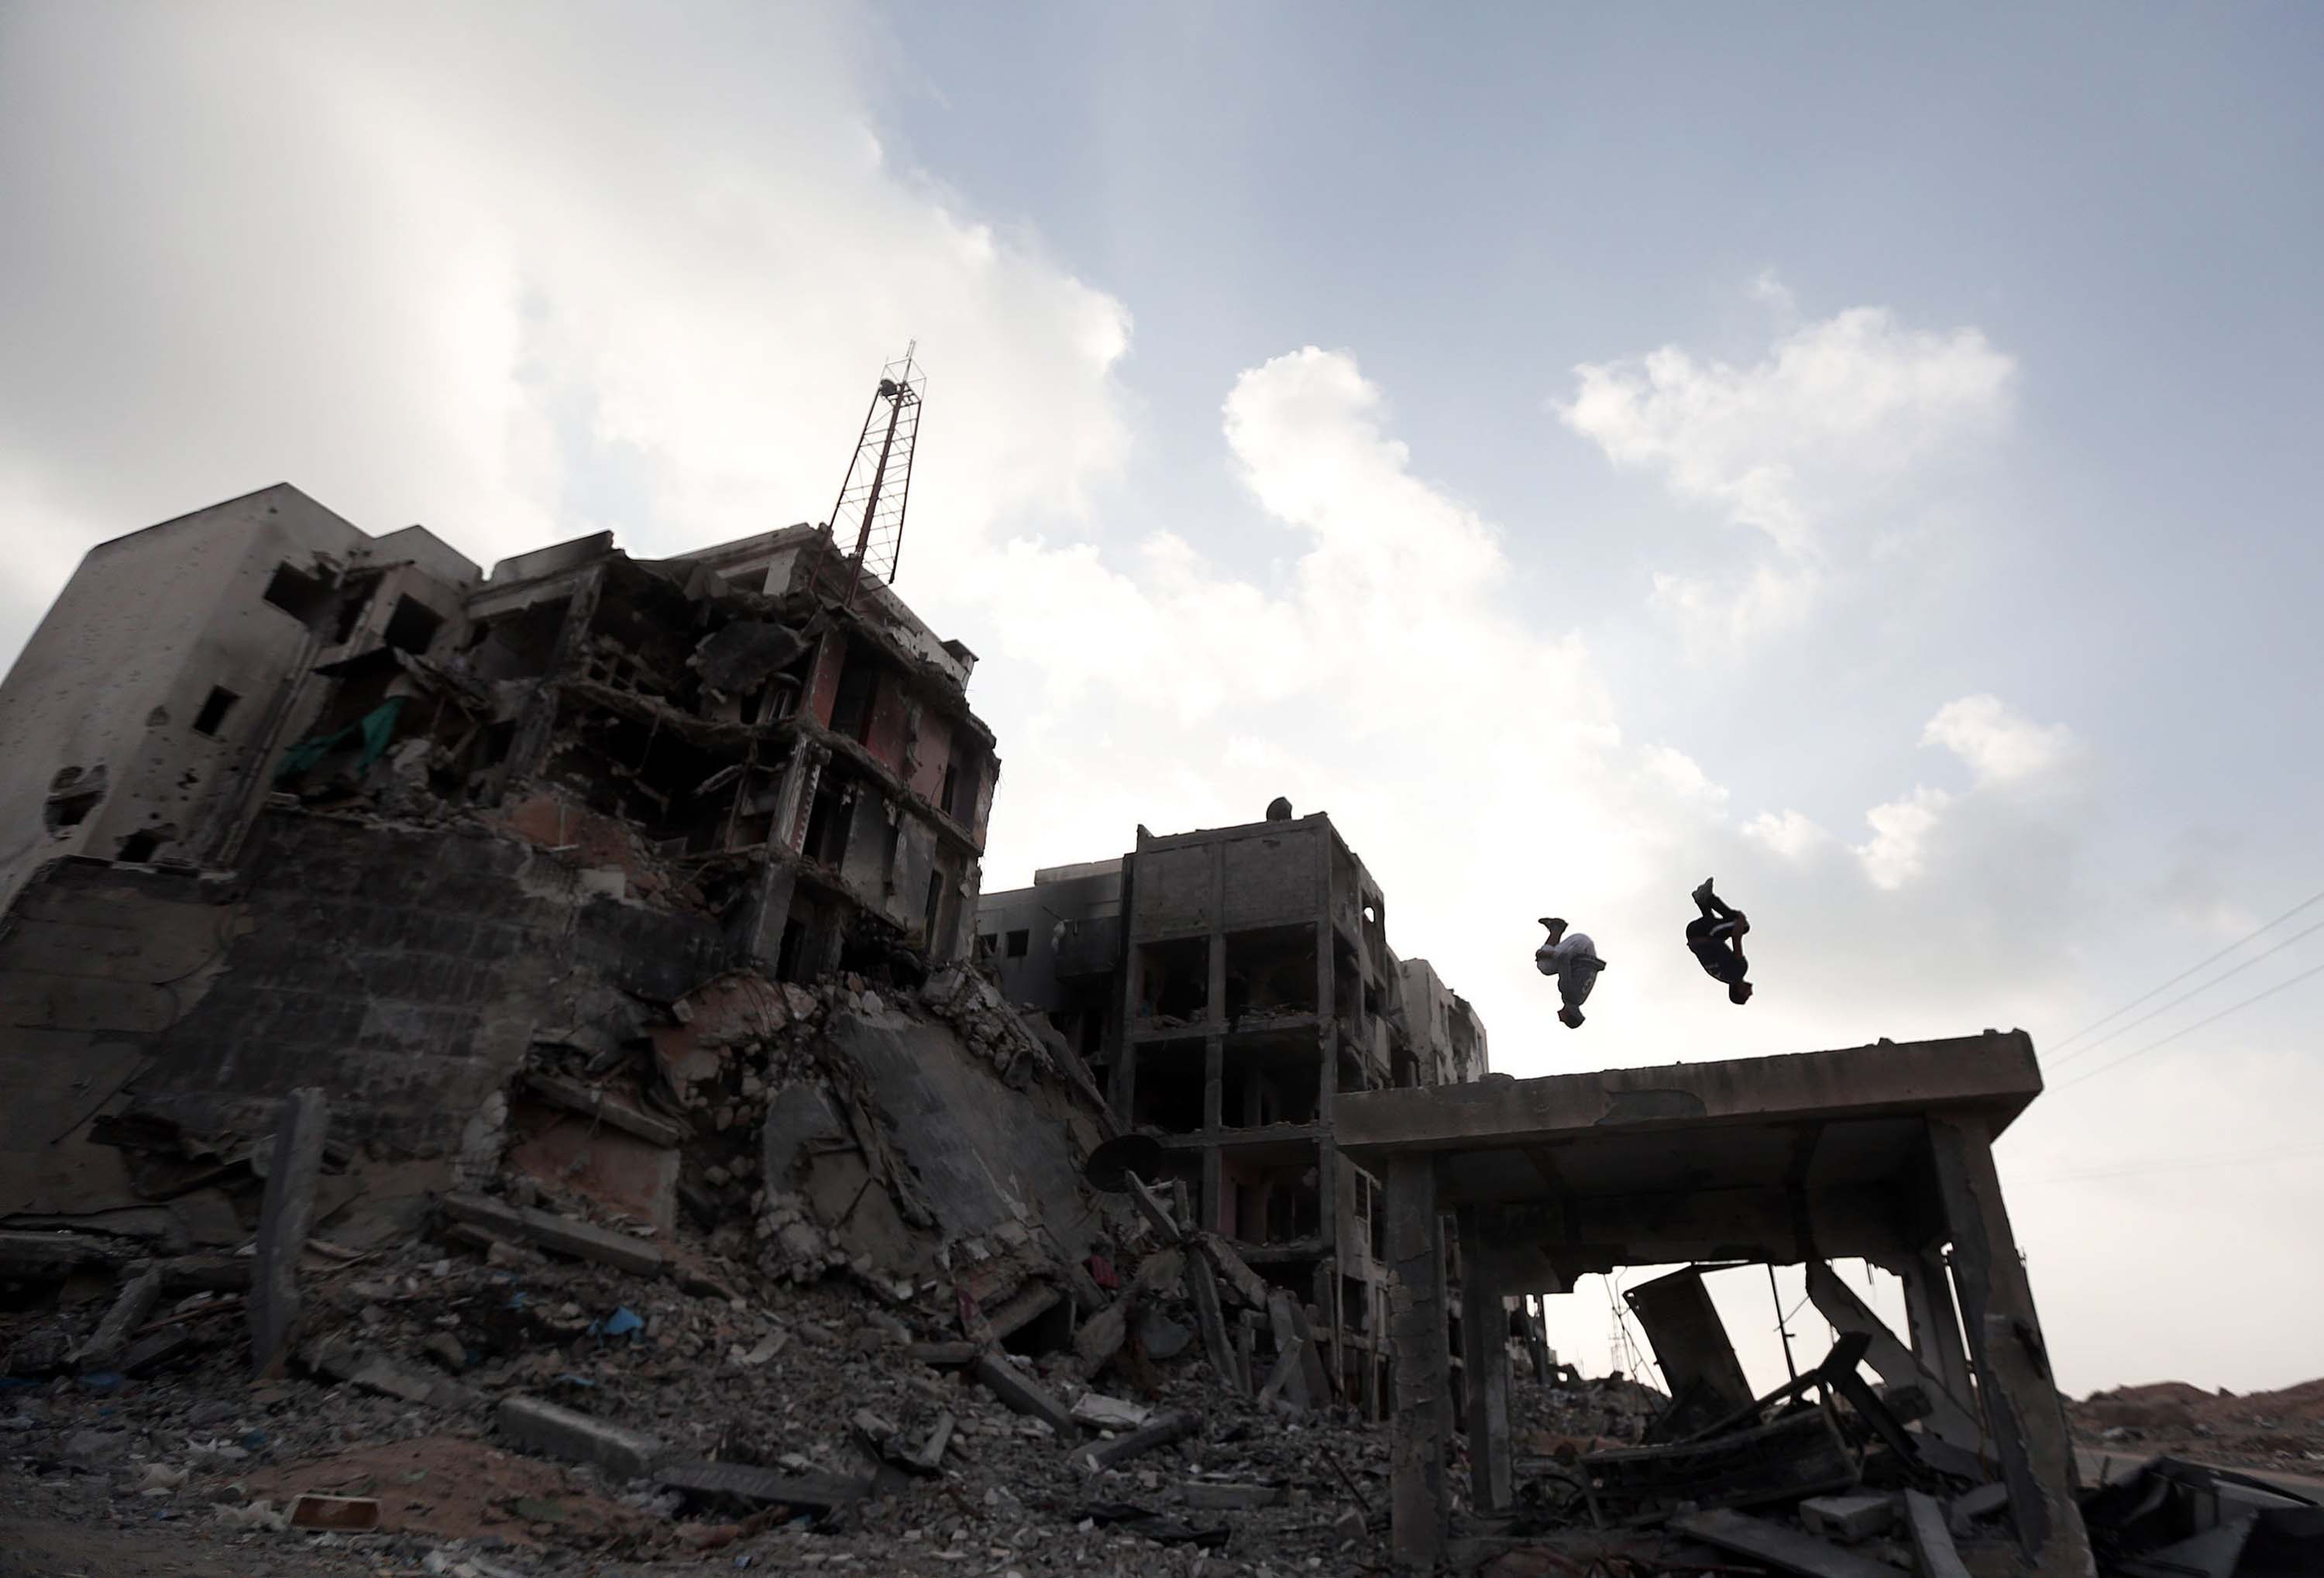 Palestinian boys practice parkour skills amid the ruins of buildings, which were destroyed by Israeli offensives in Beit Lahia town of Gaza on Oct. 18, 2014.